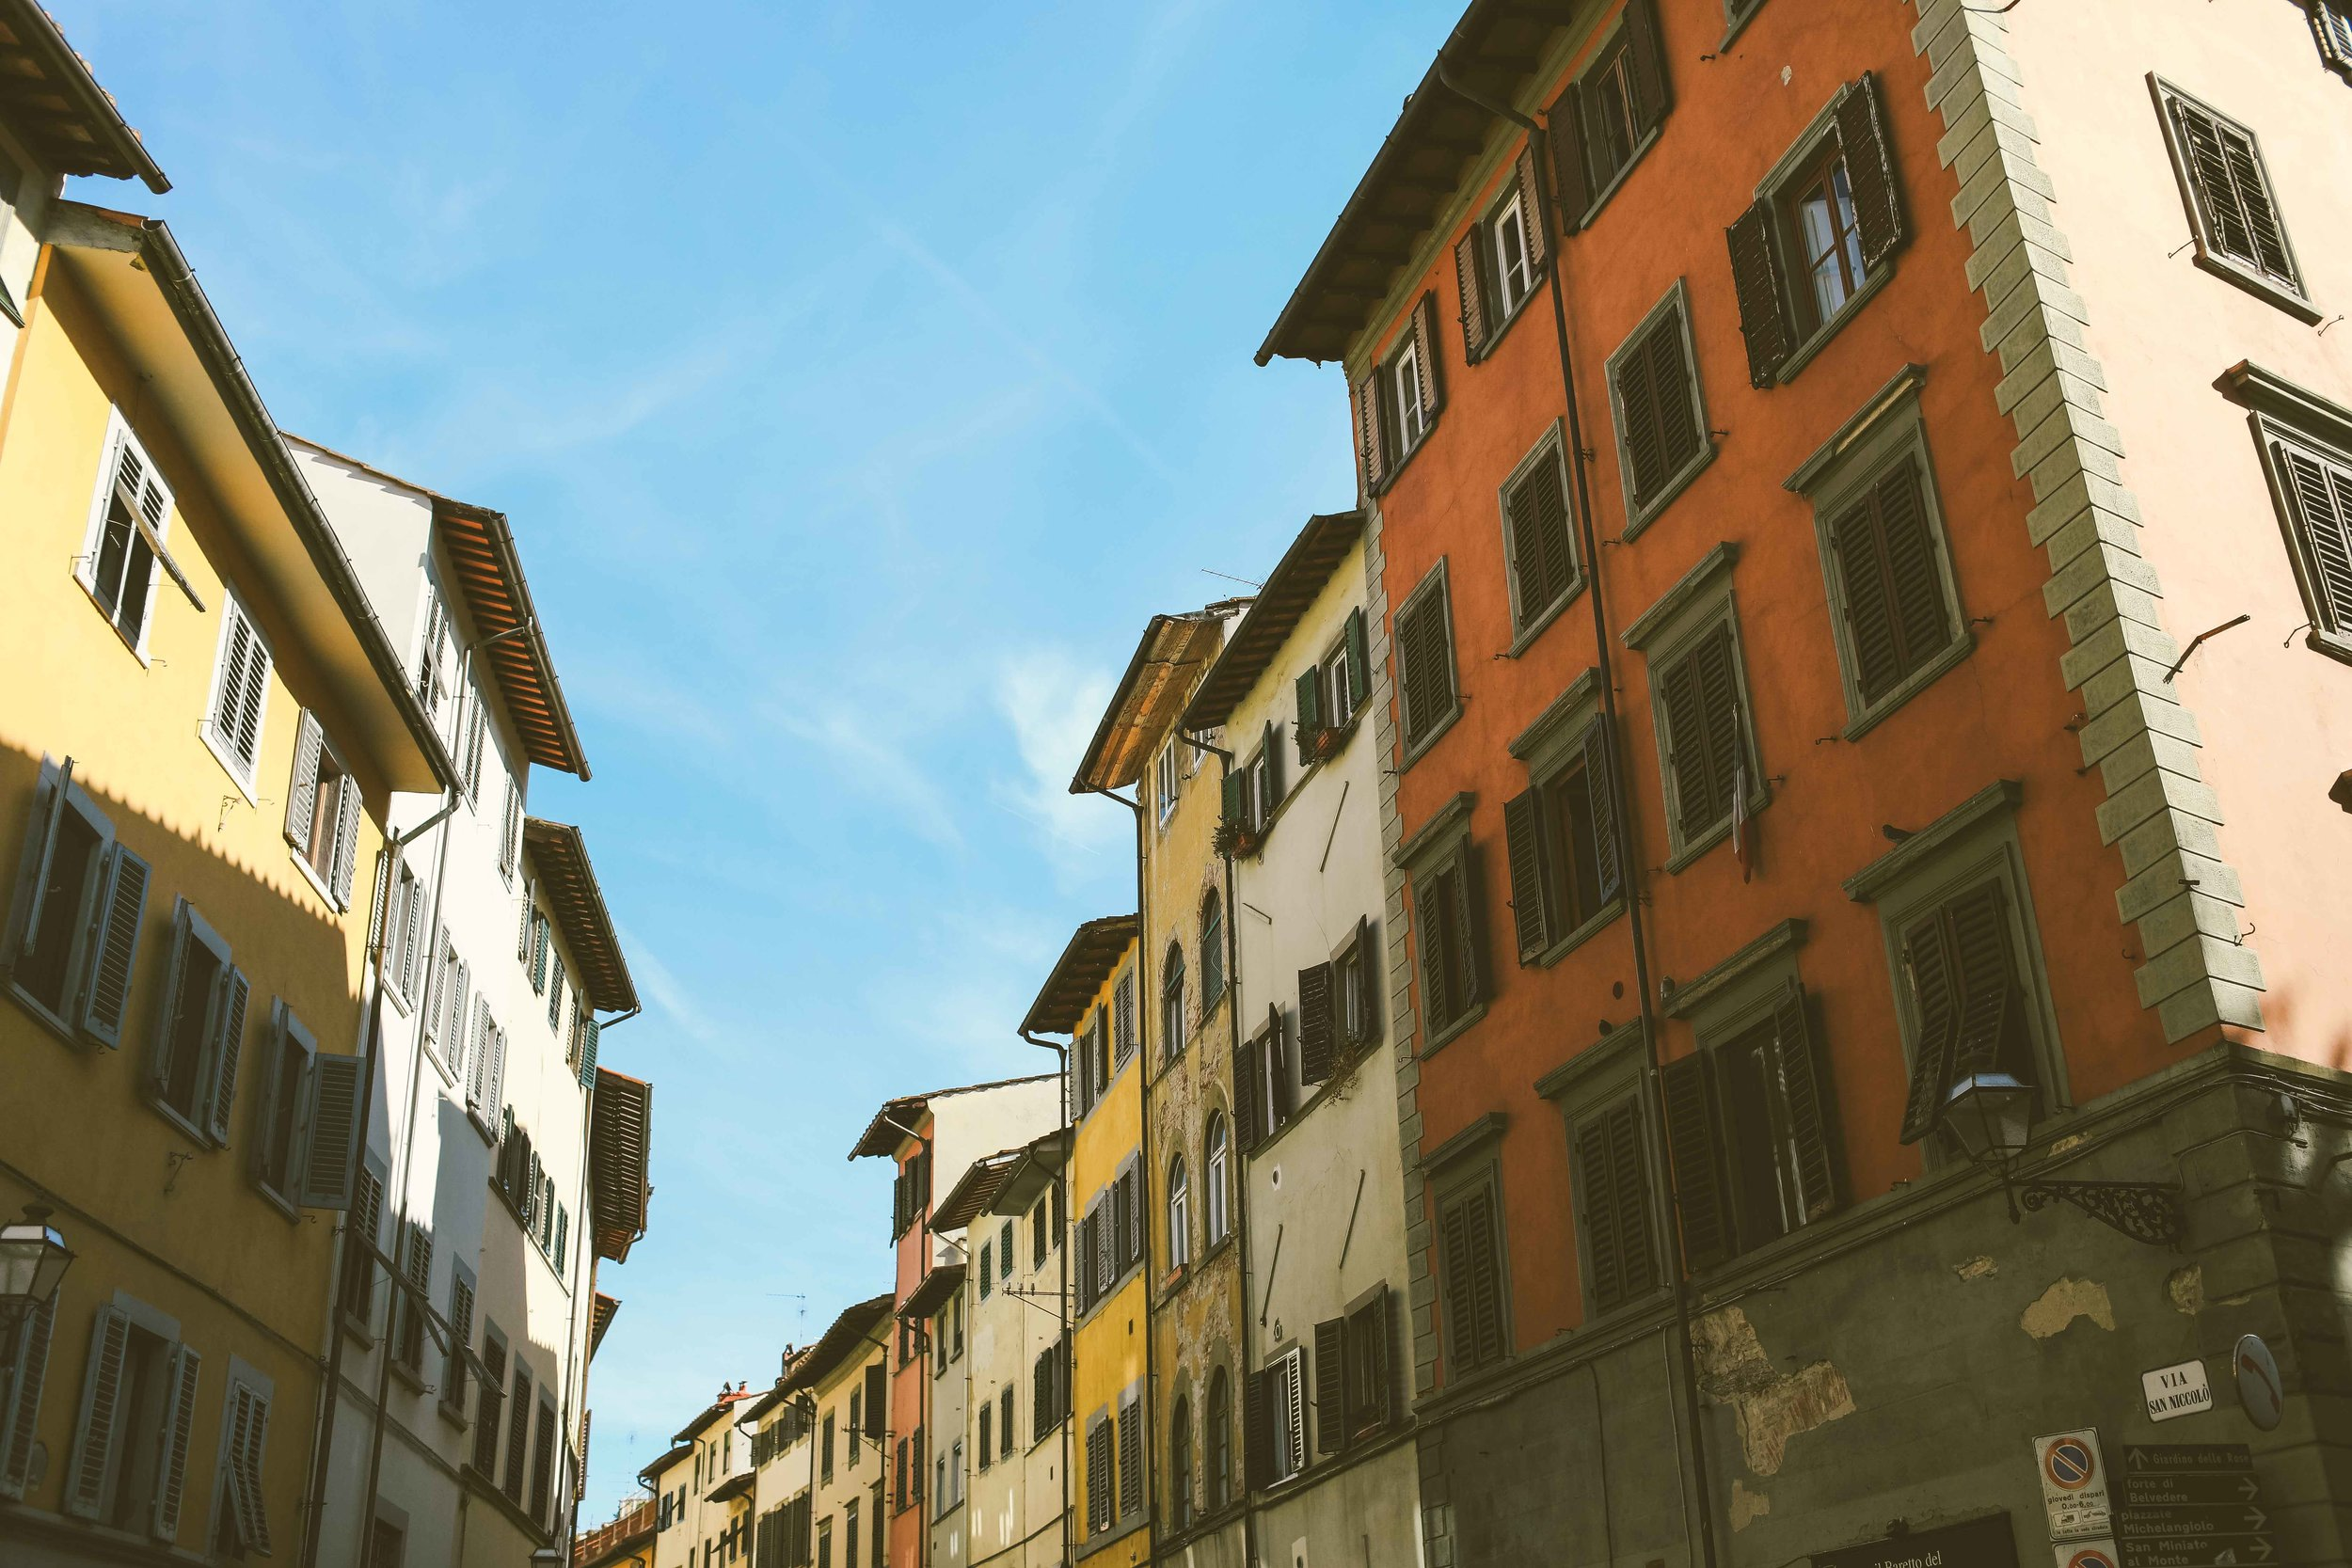 Travel_Photography_Florence_Italy_4.jpg